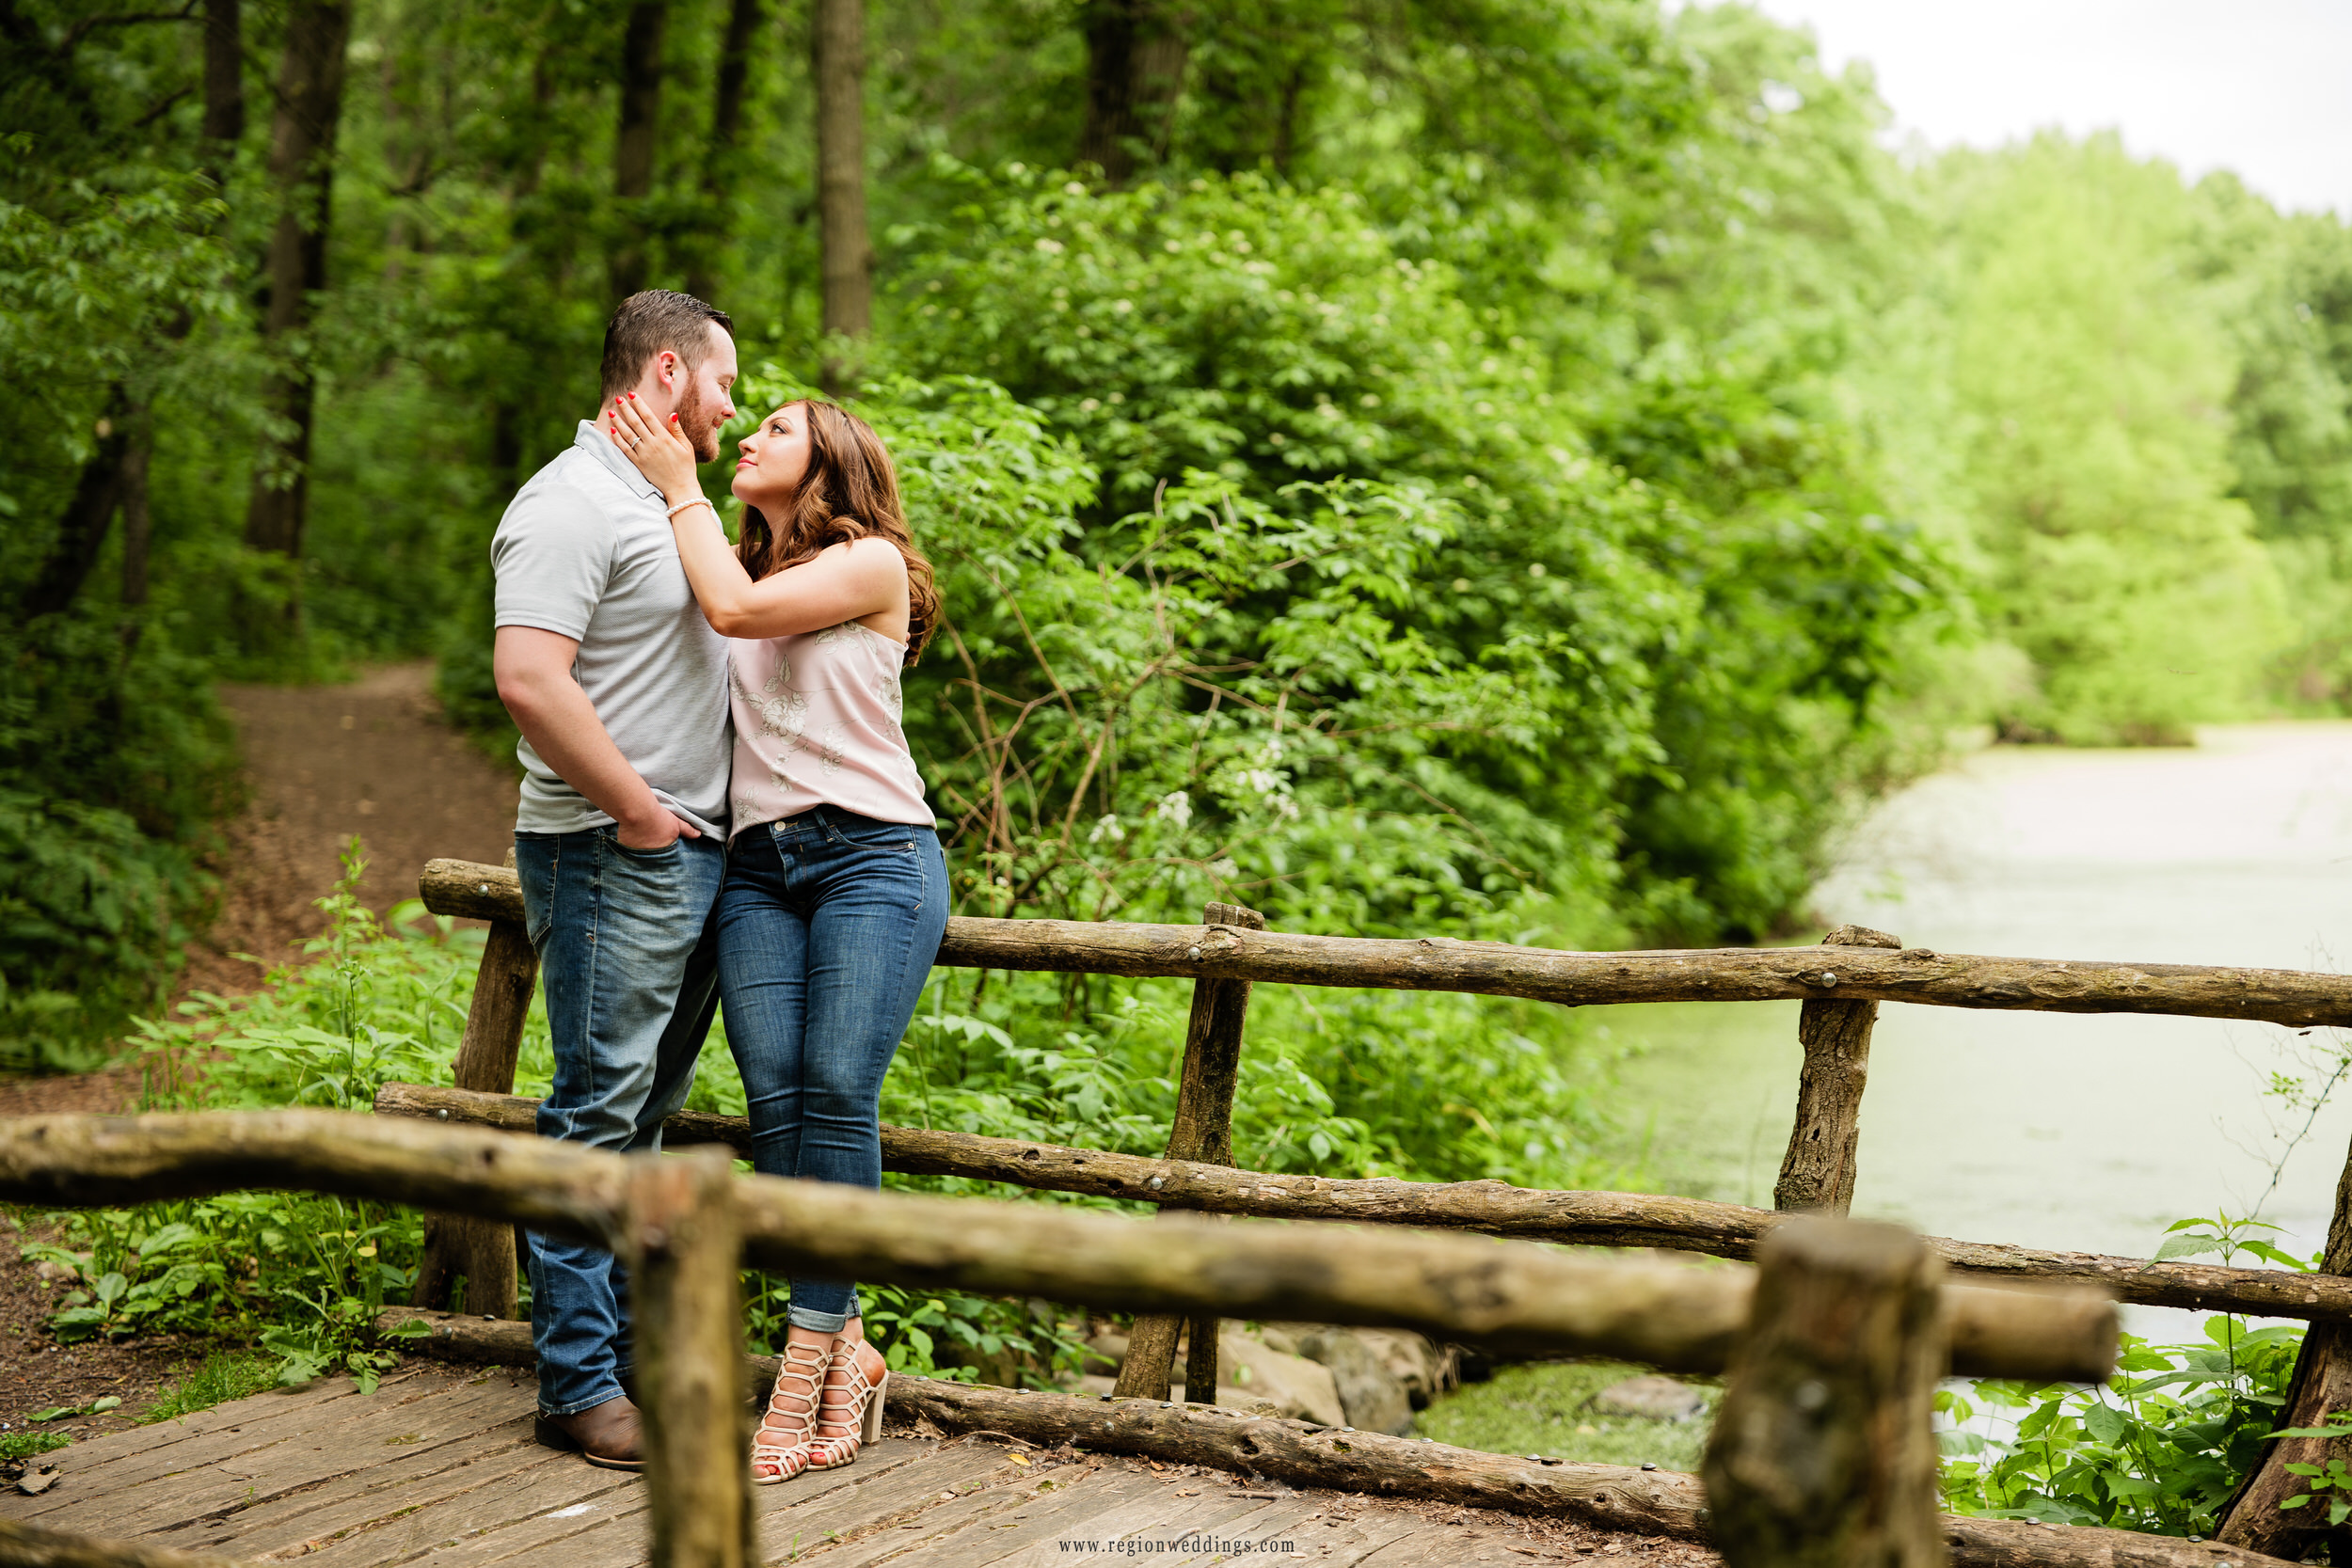 A romantic moment on a bridge surrounded by nature.